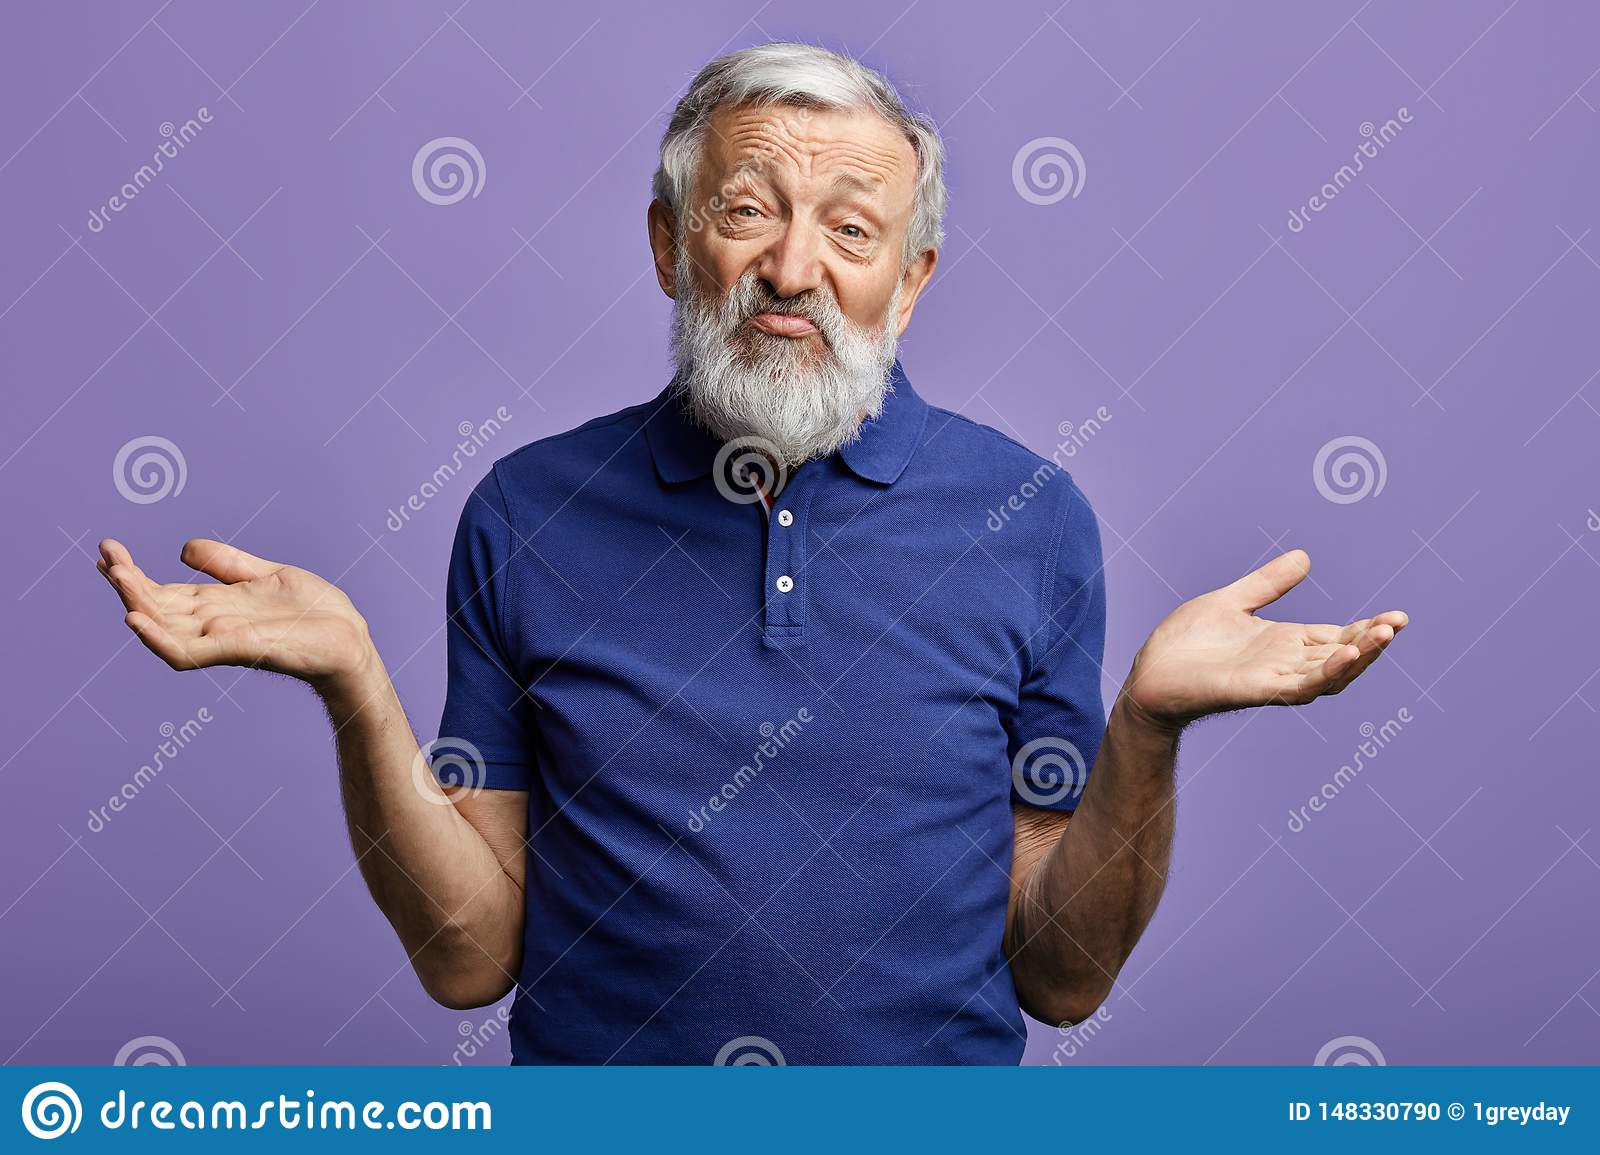 Bearded old man expresses clueless with raised arms looking at the camera